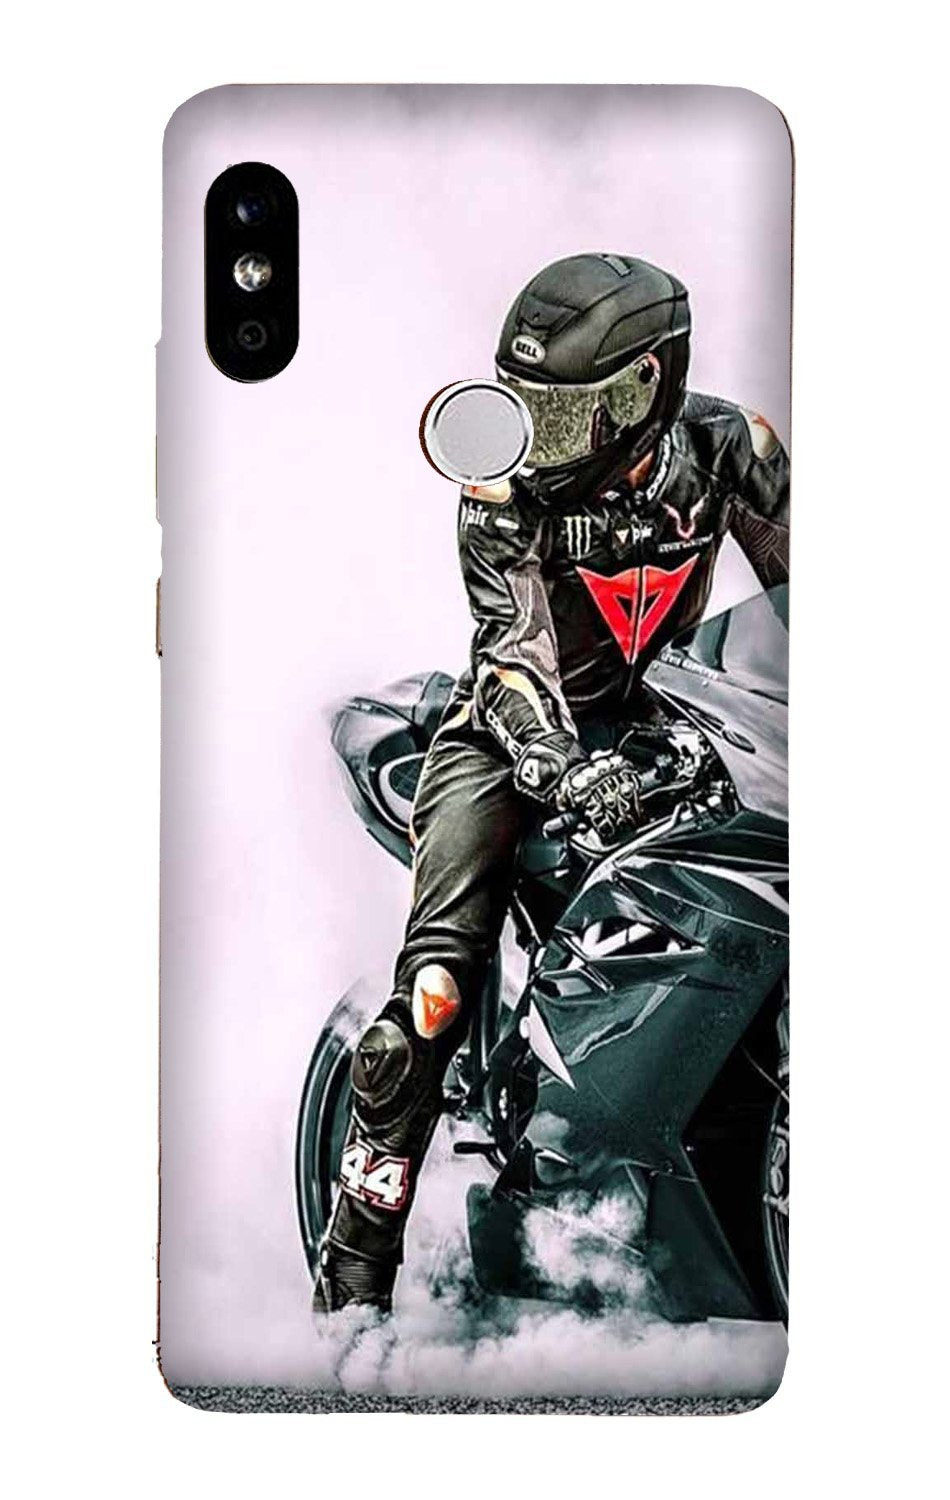 Biker Mobile Back Case for Mi A2  (Design - 383)